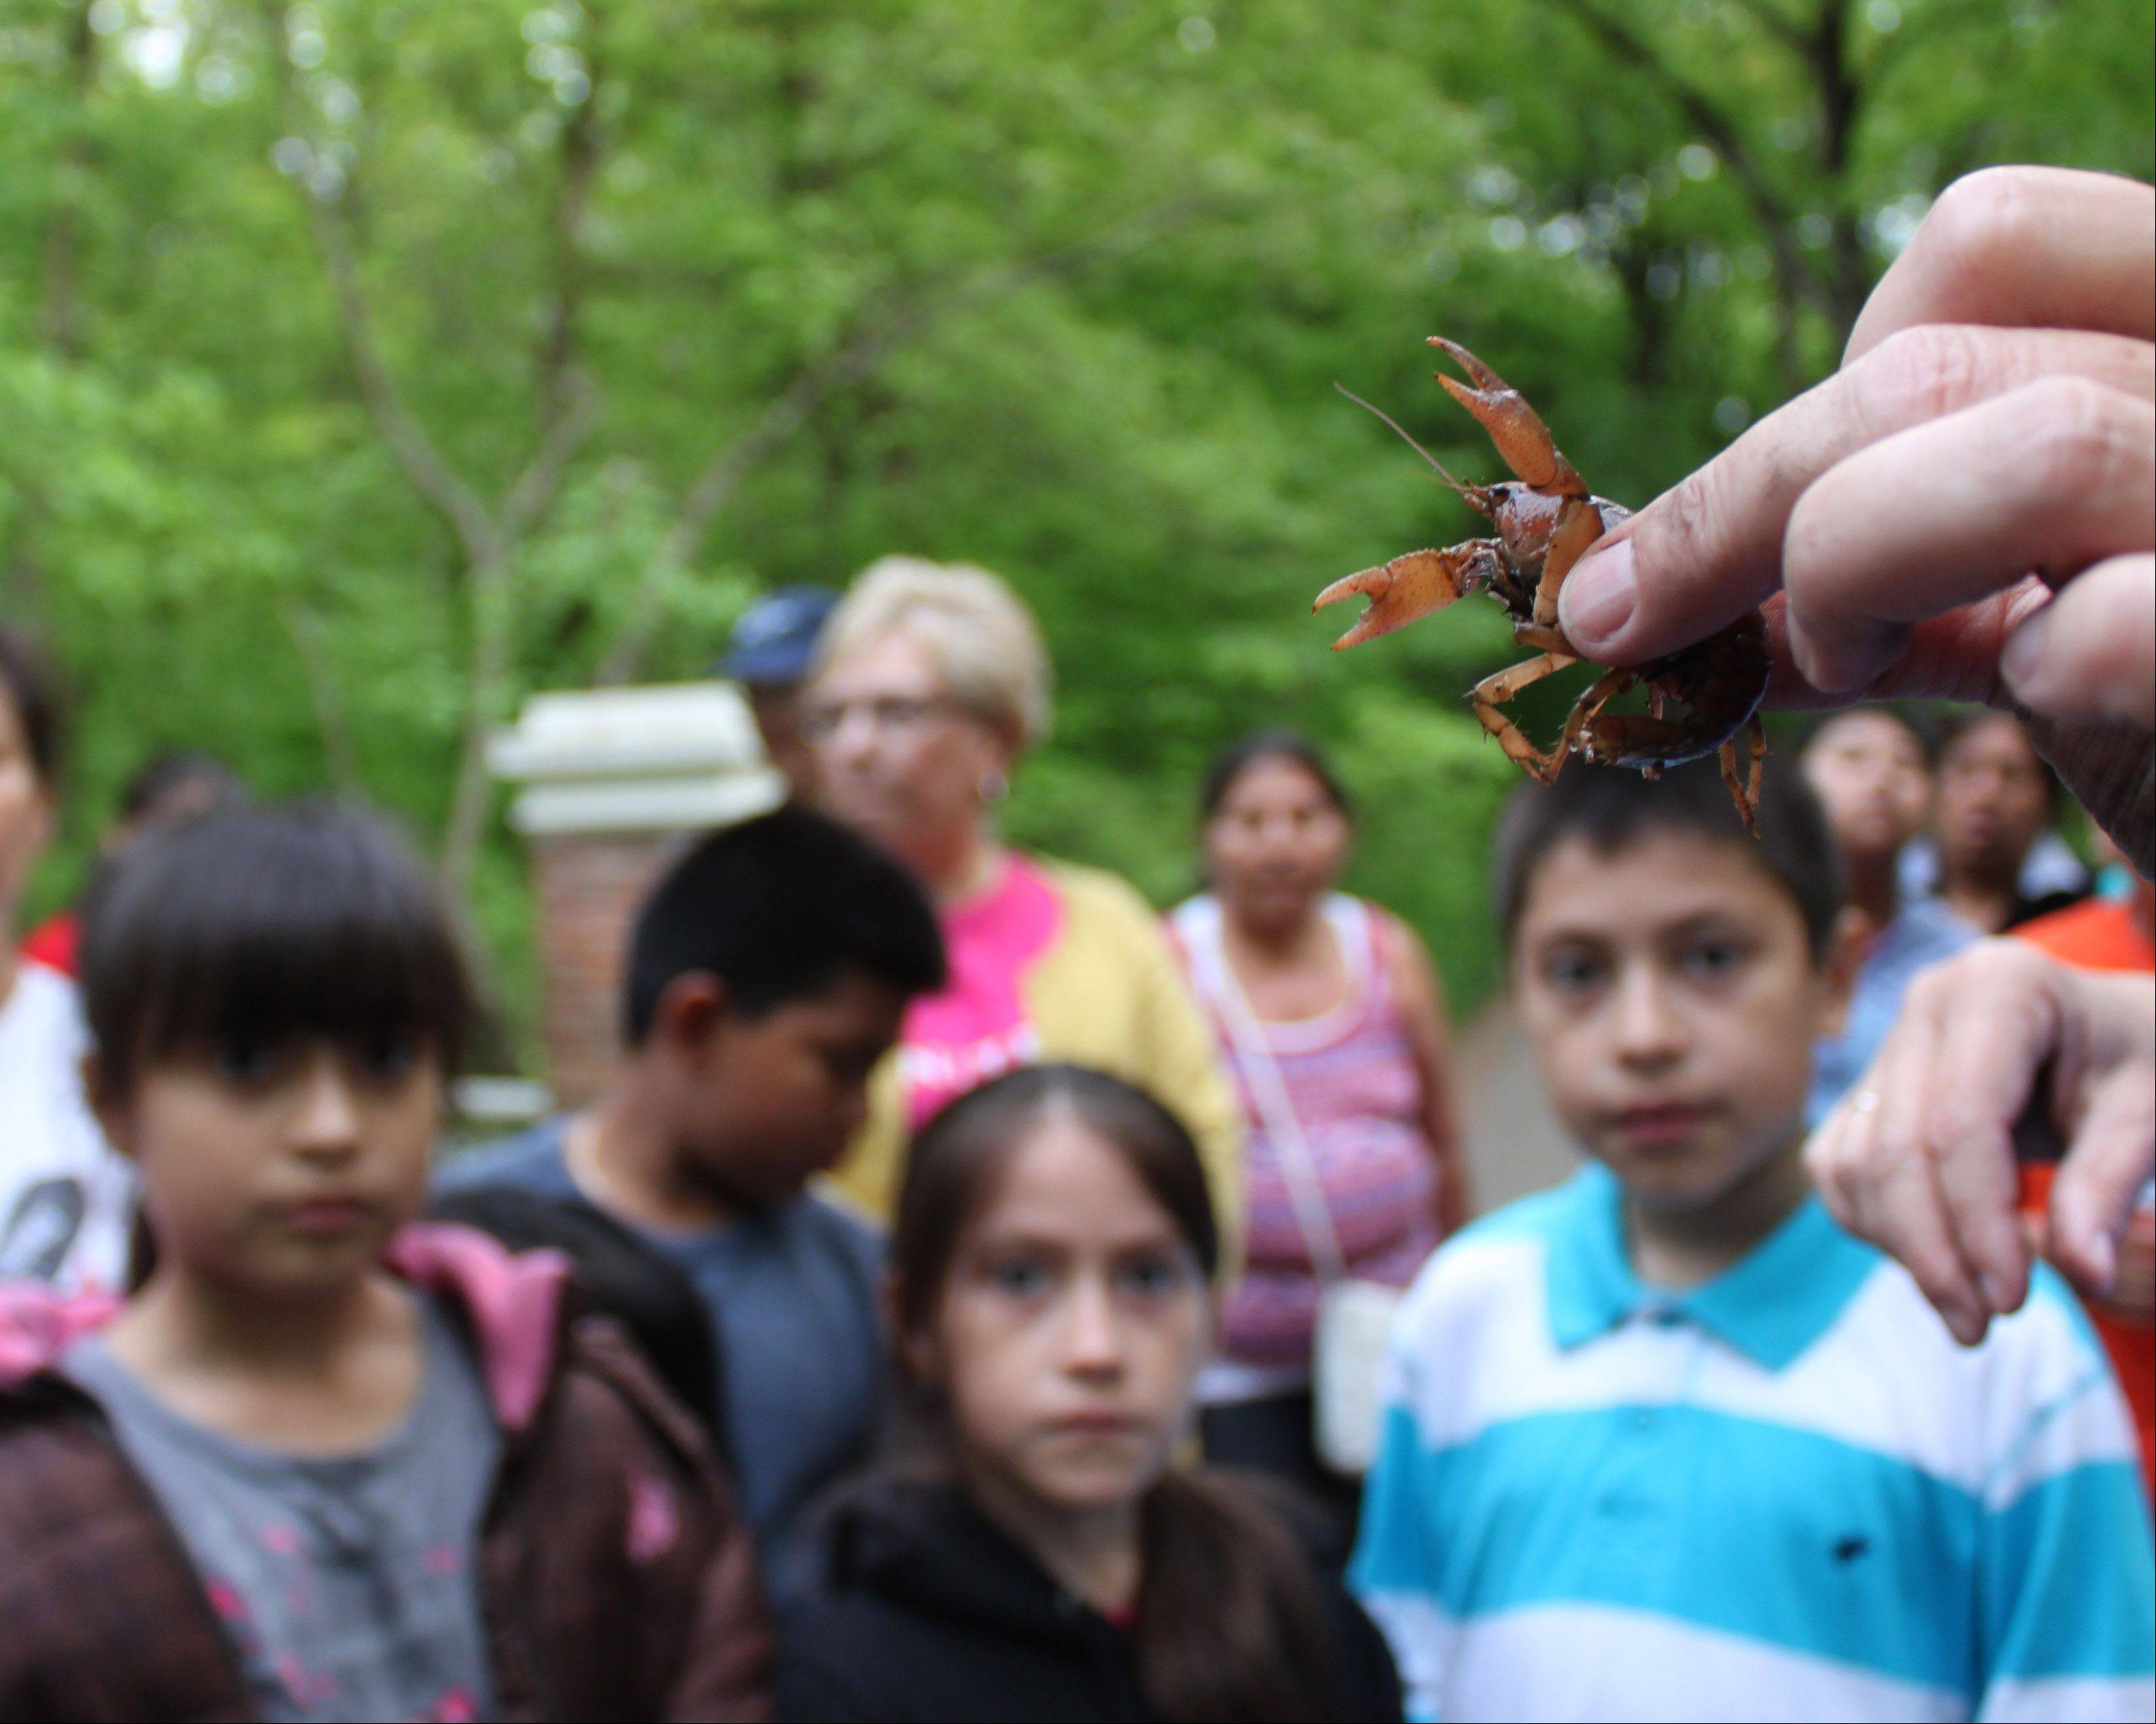 Participants in one of the Friends of Ryerson Woods' free guided bilingual nature hikes get an up-close view of a crawfish. The hikes are sponsored by Friends of Ryerson Woods and Lake County Forest Preserve District with help from several community partners.